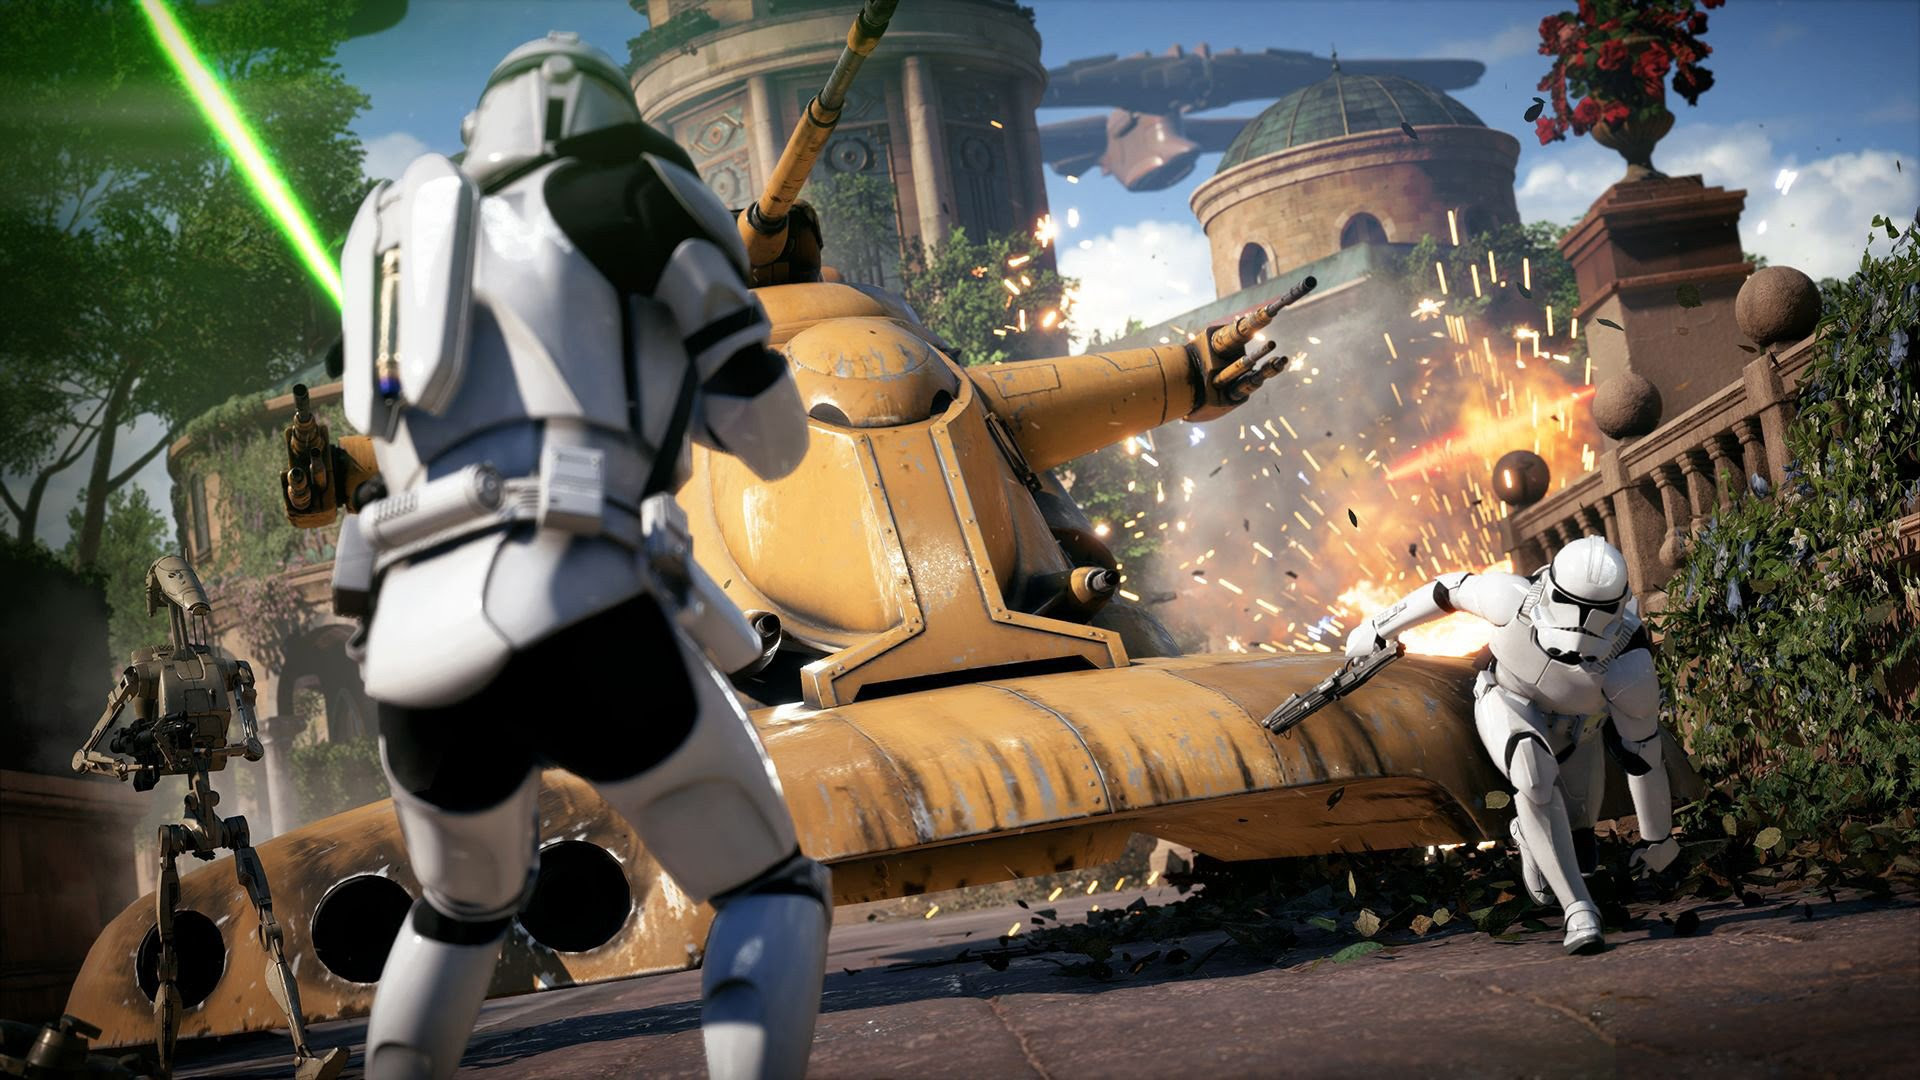 Come see Star Wars Battlefront II's loot crate system in action screenshot